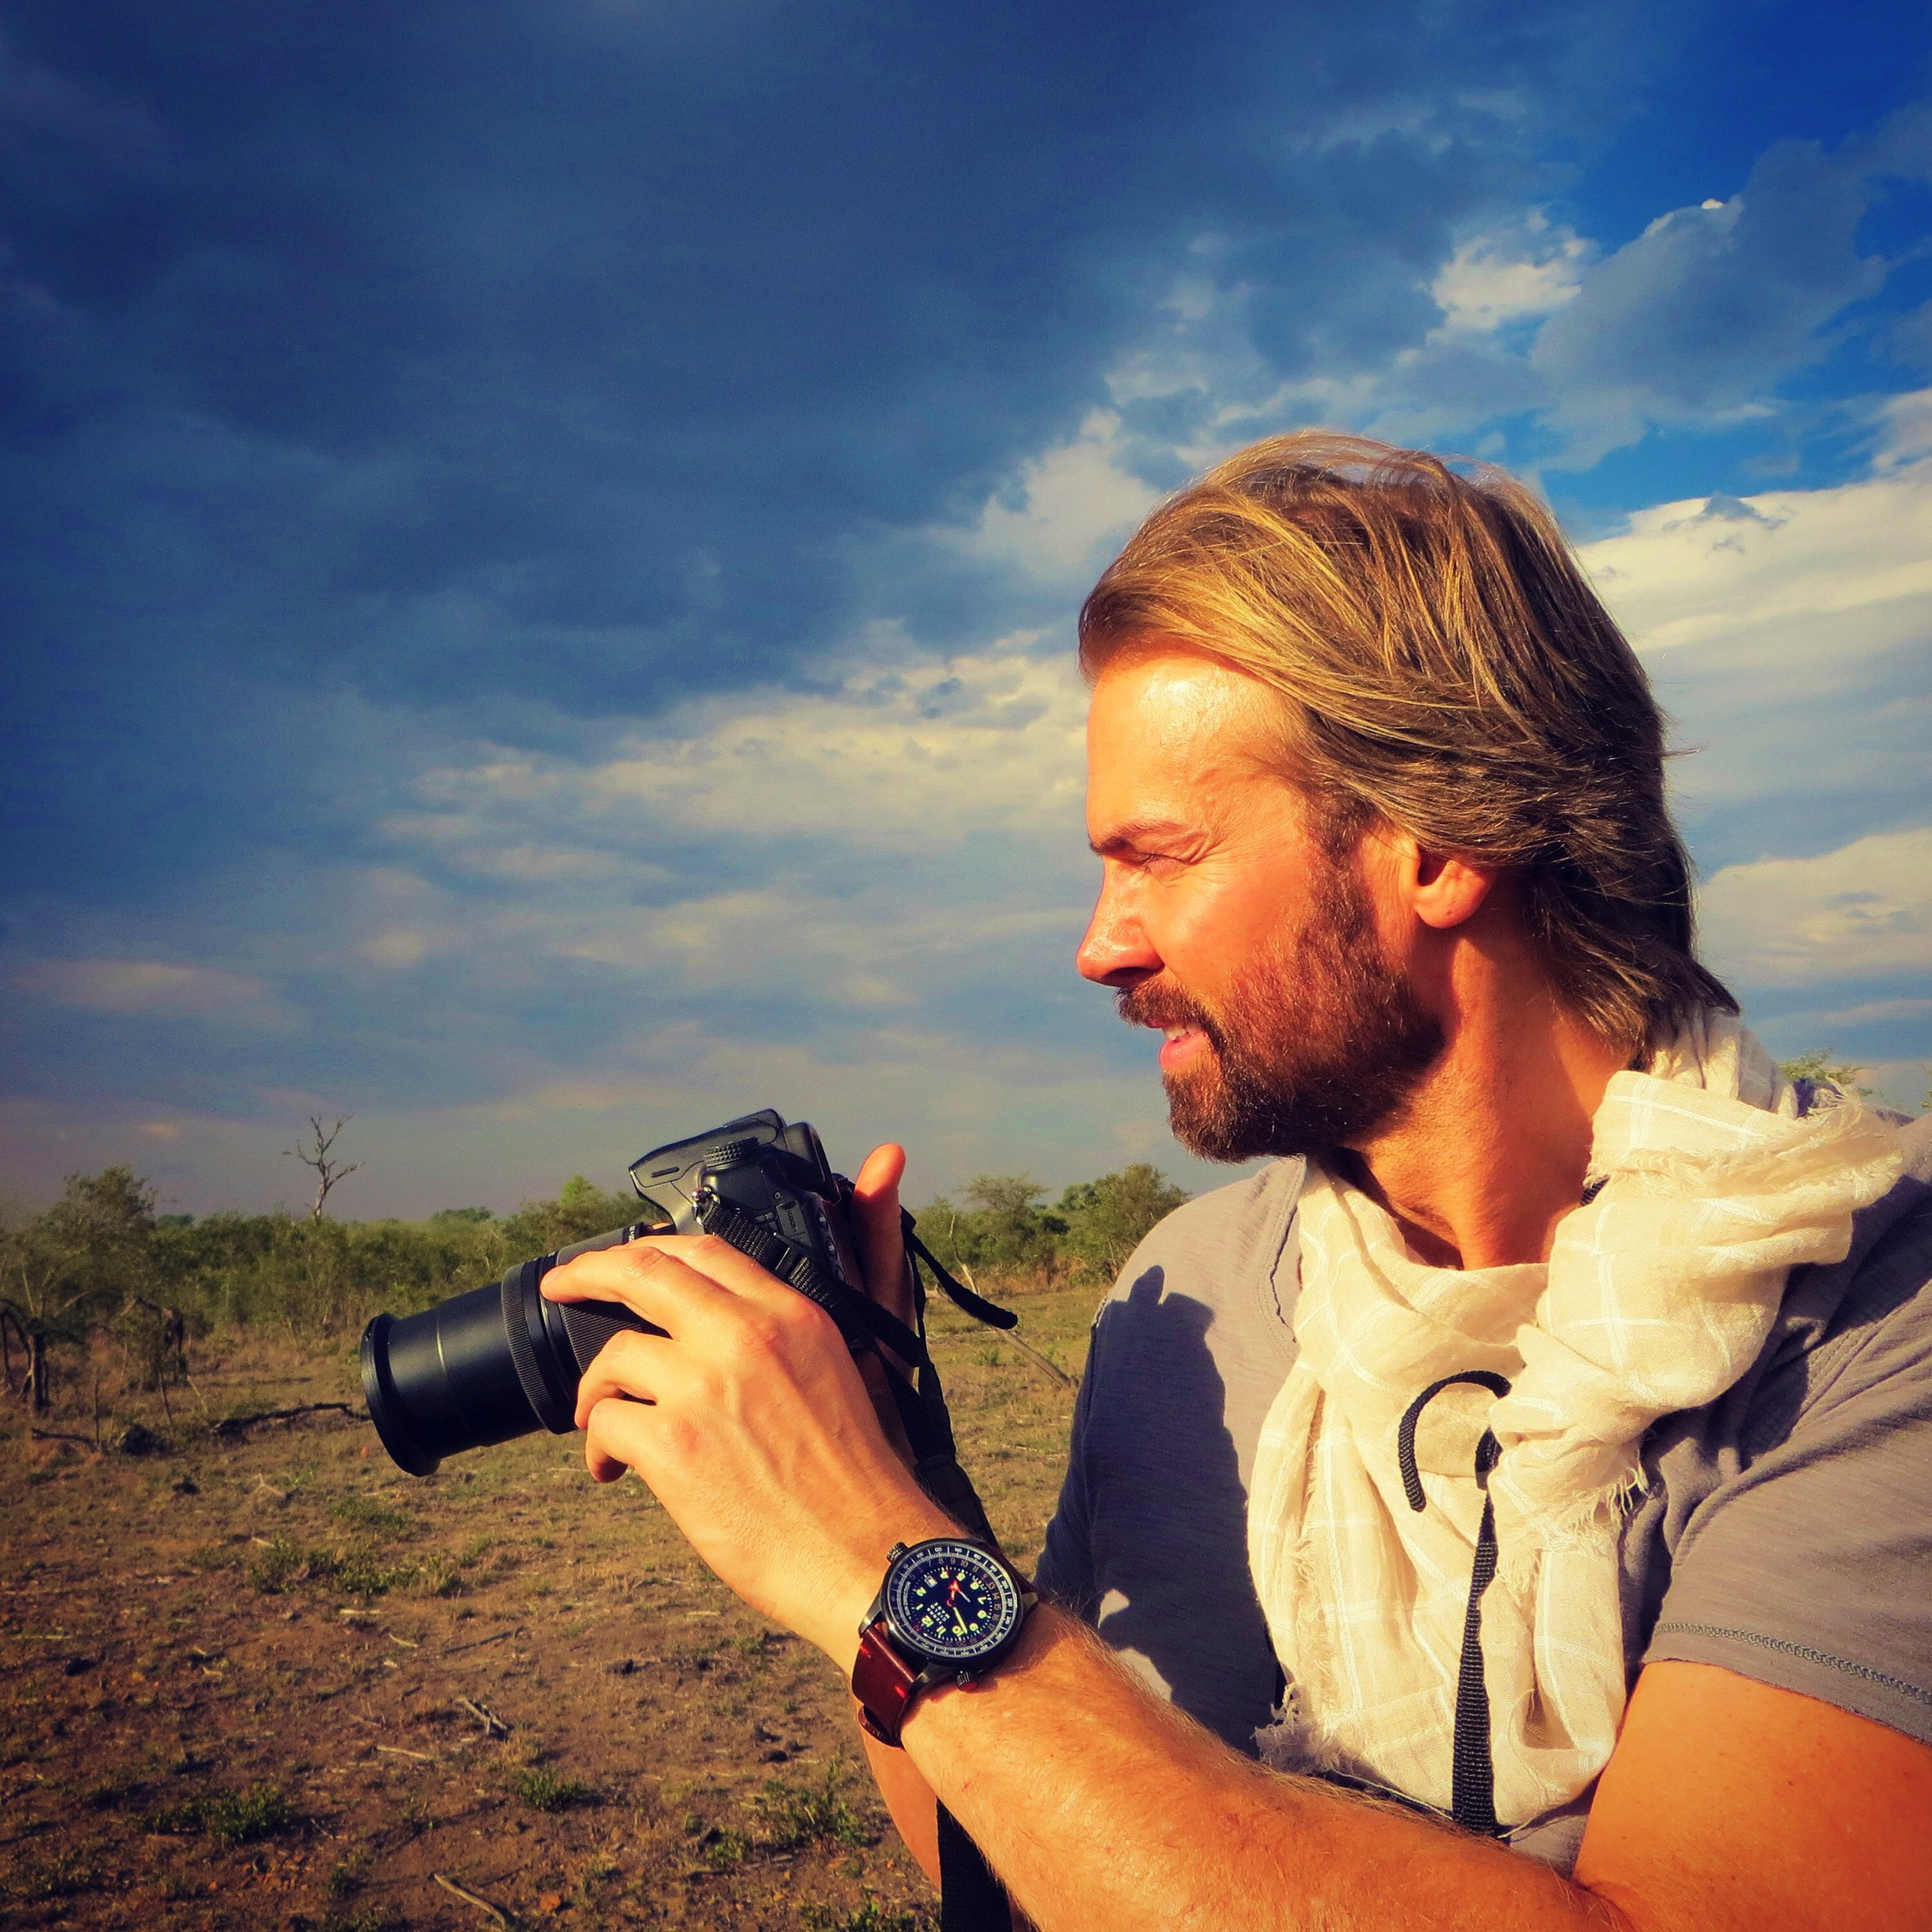 """""""Travel is an important piece of my writing process. Not only does it fire my imagination, but it also provides unique perspective and context for my characters."""" - Ryan Winfield, South Africa"""